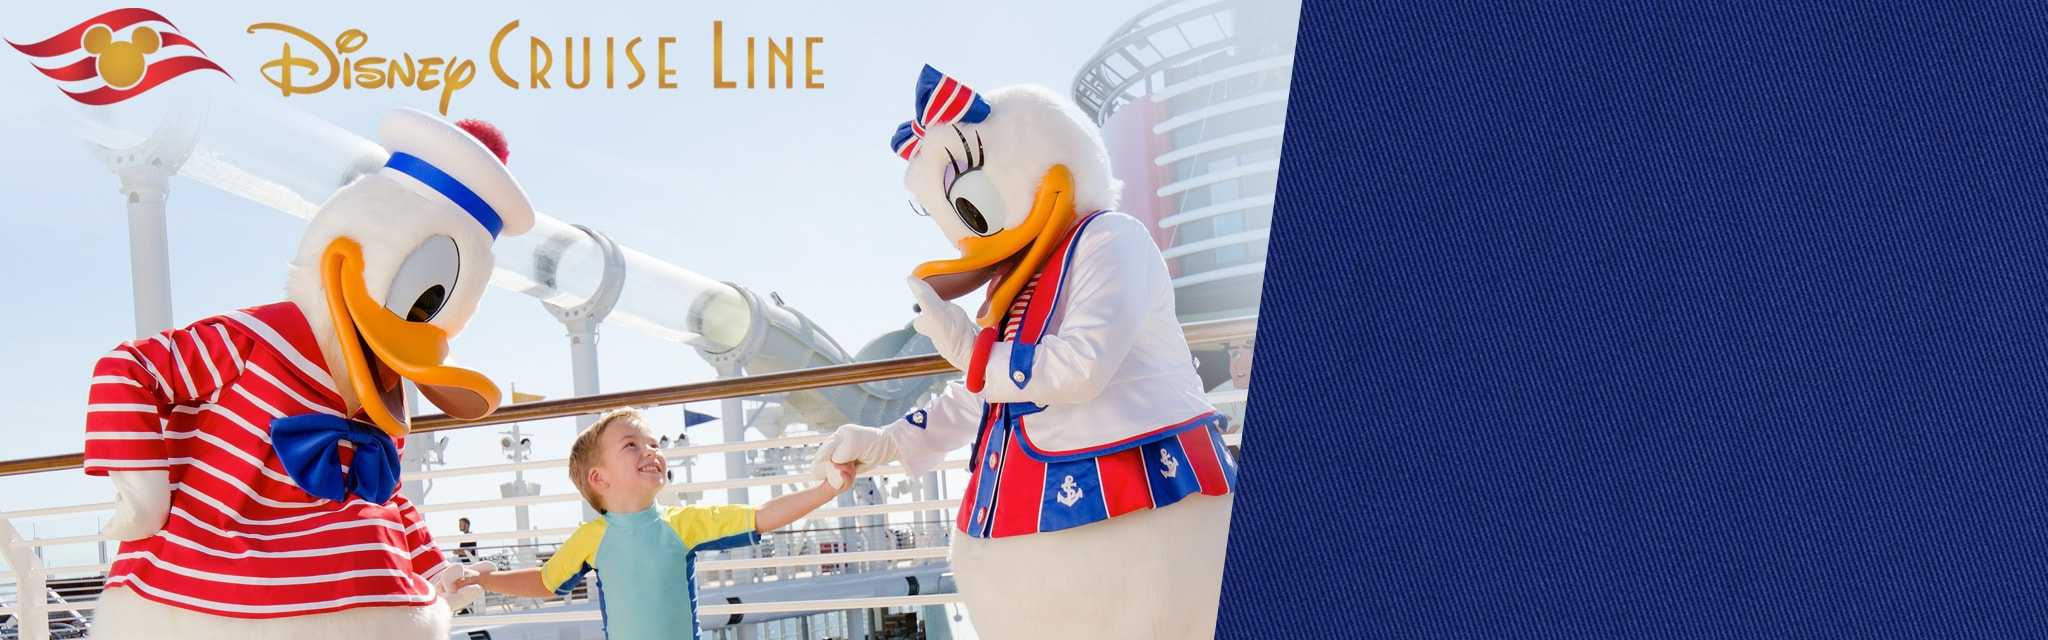 DCL - Summer 2018 Itineraries (June 17) - Hero